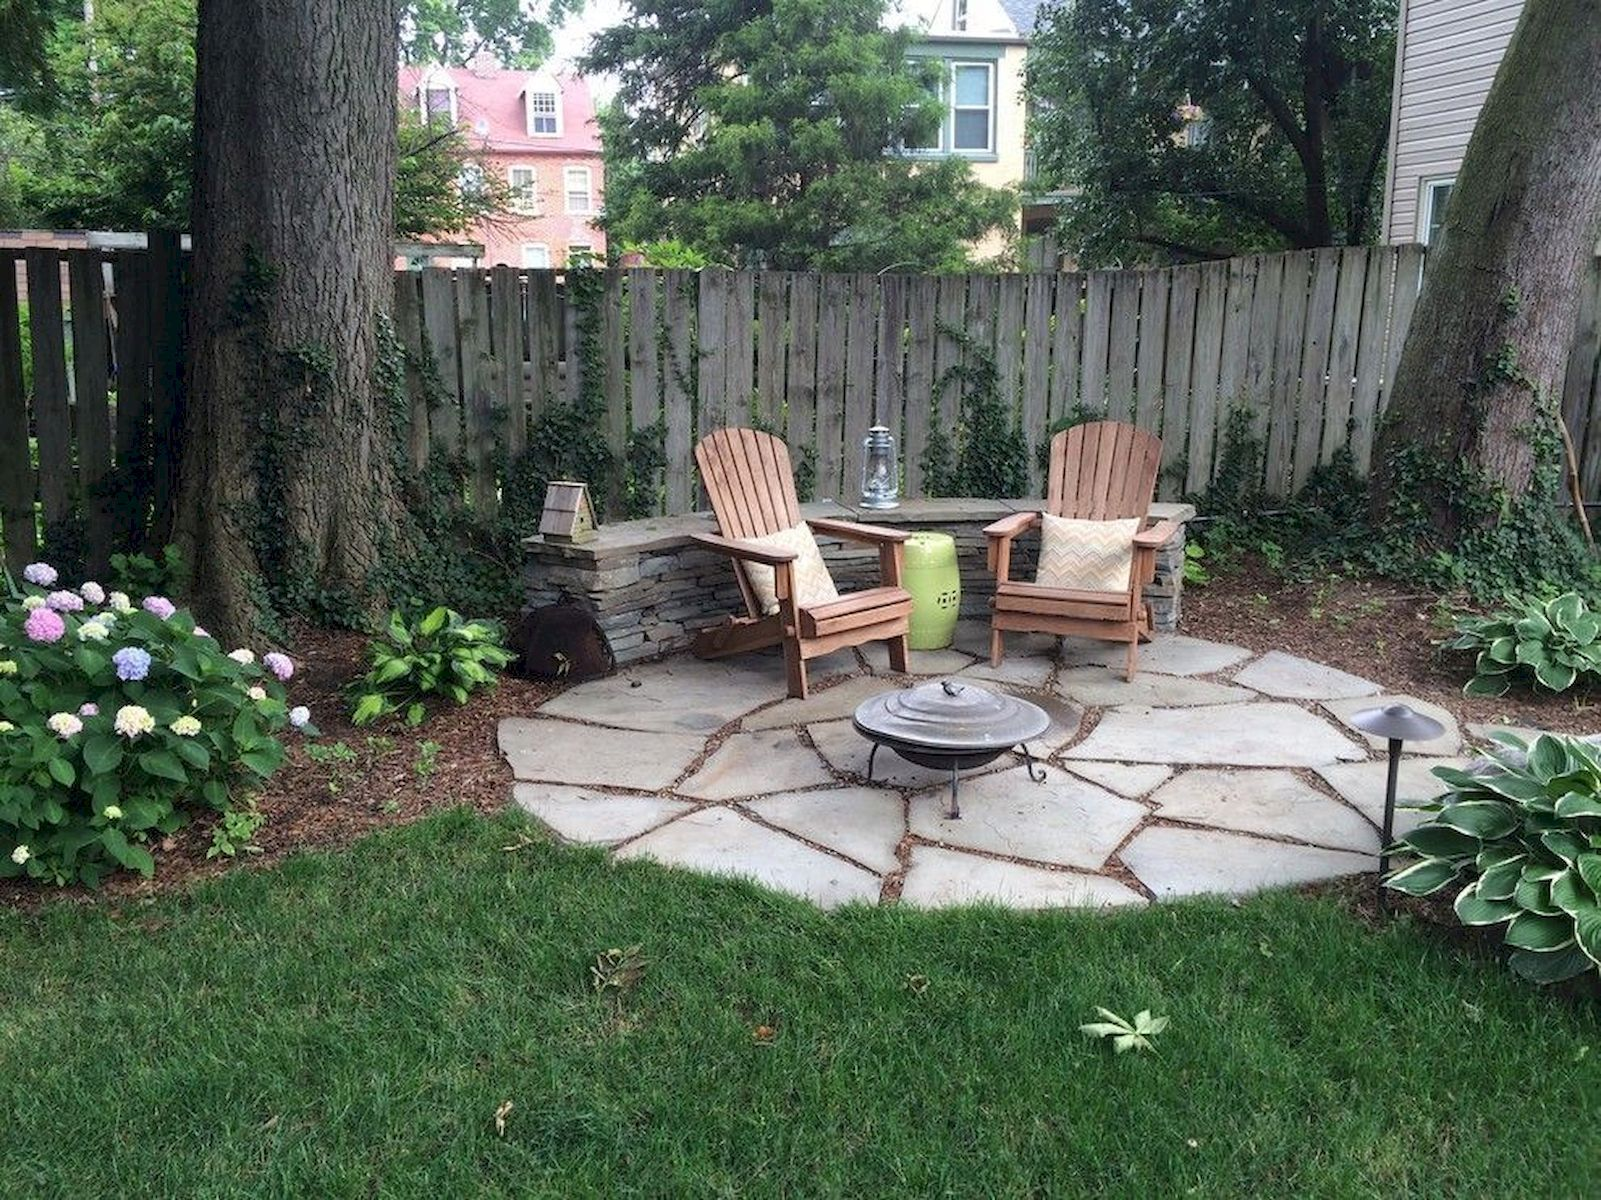 52 Most Creative Backyard Patio Ideas On A Budget 16 Small